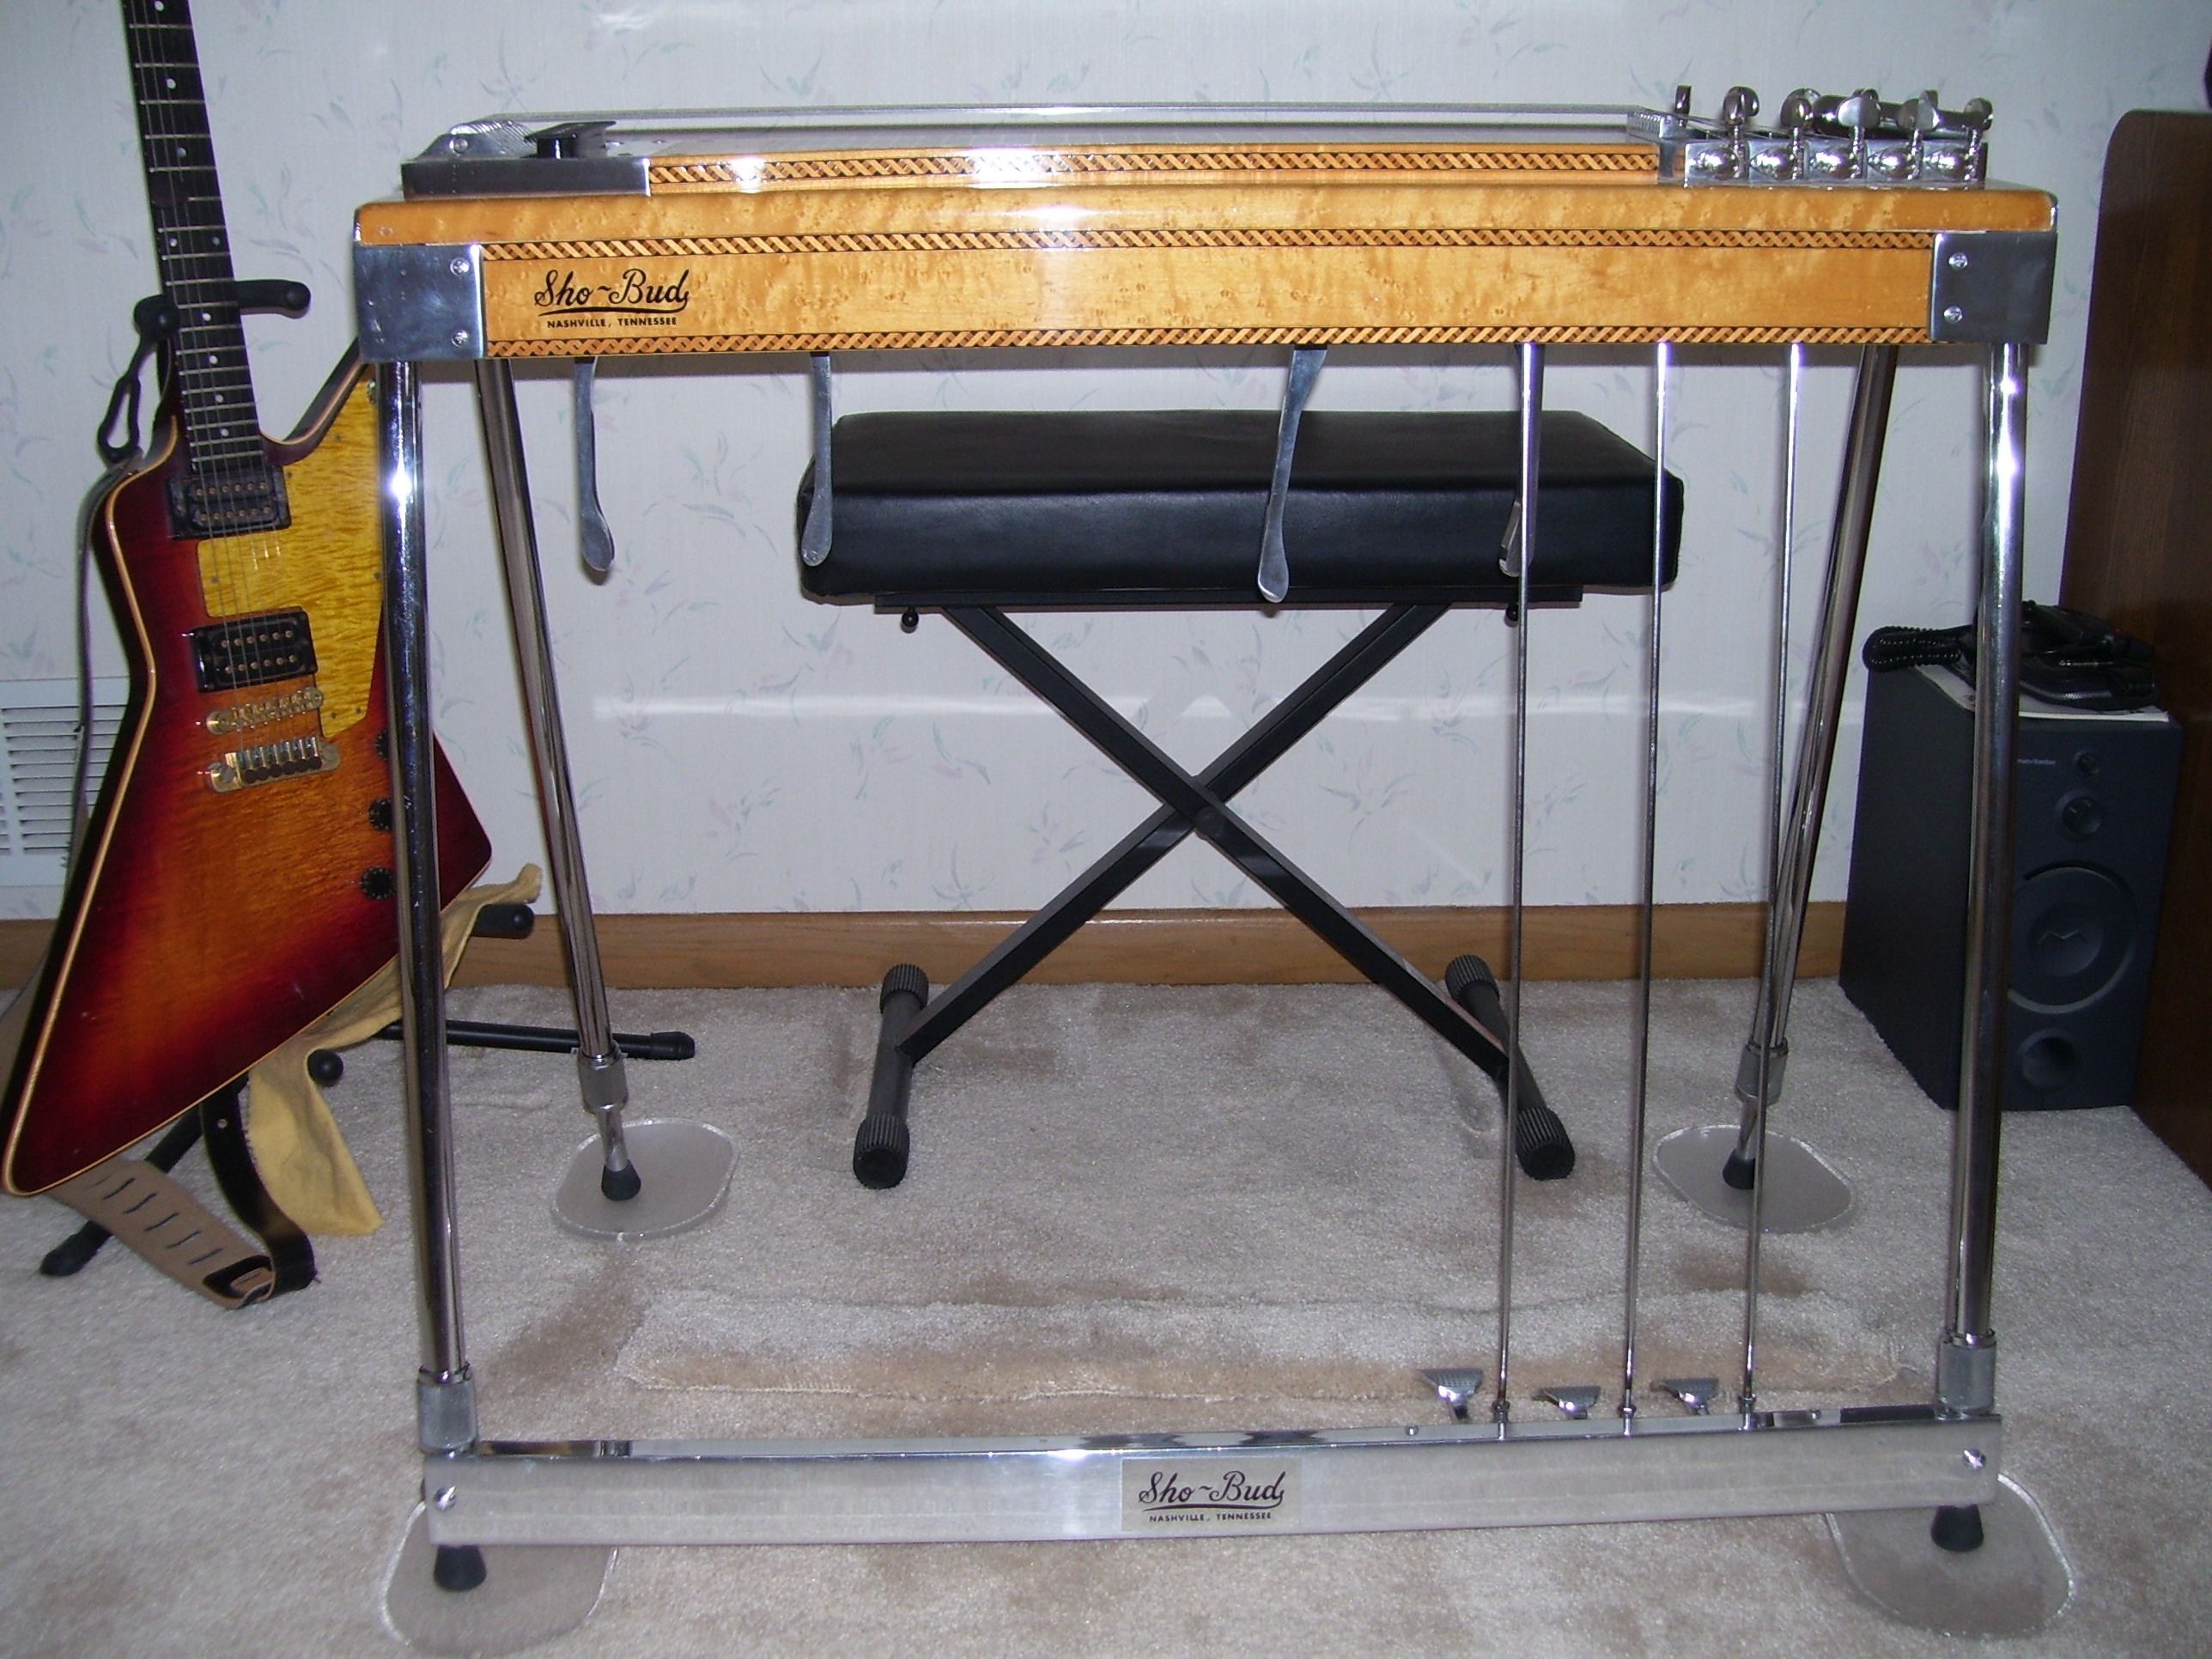 My Personal Vintage Year 1973 Sho Bud S 10 Pedal Steel Guitar Pedal Steel Guitar Lap Steel Guitar Steel Guitar